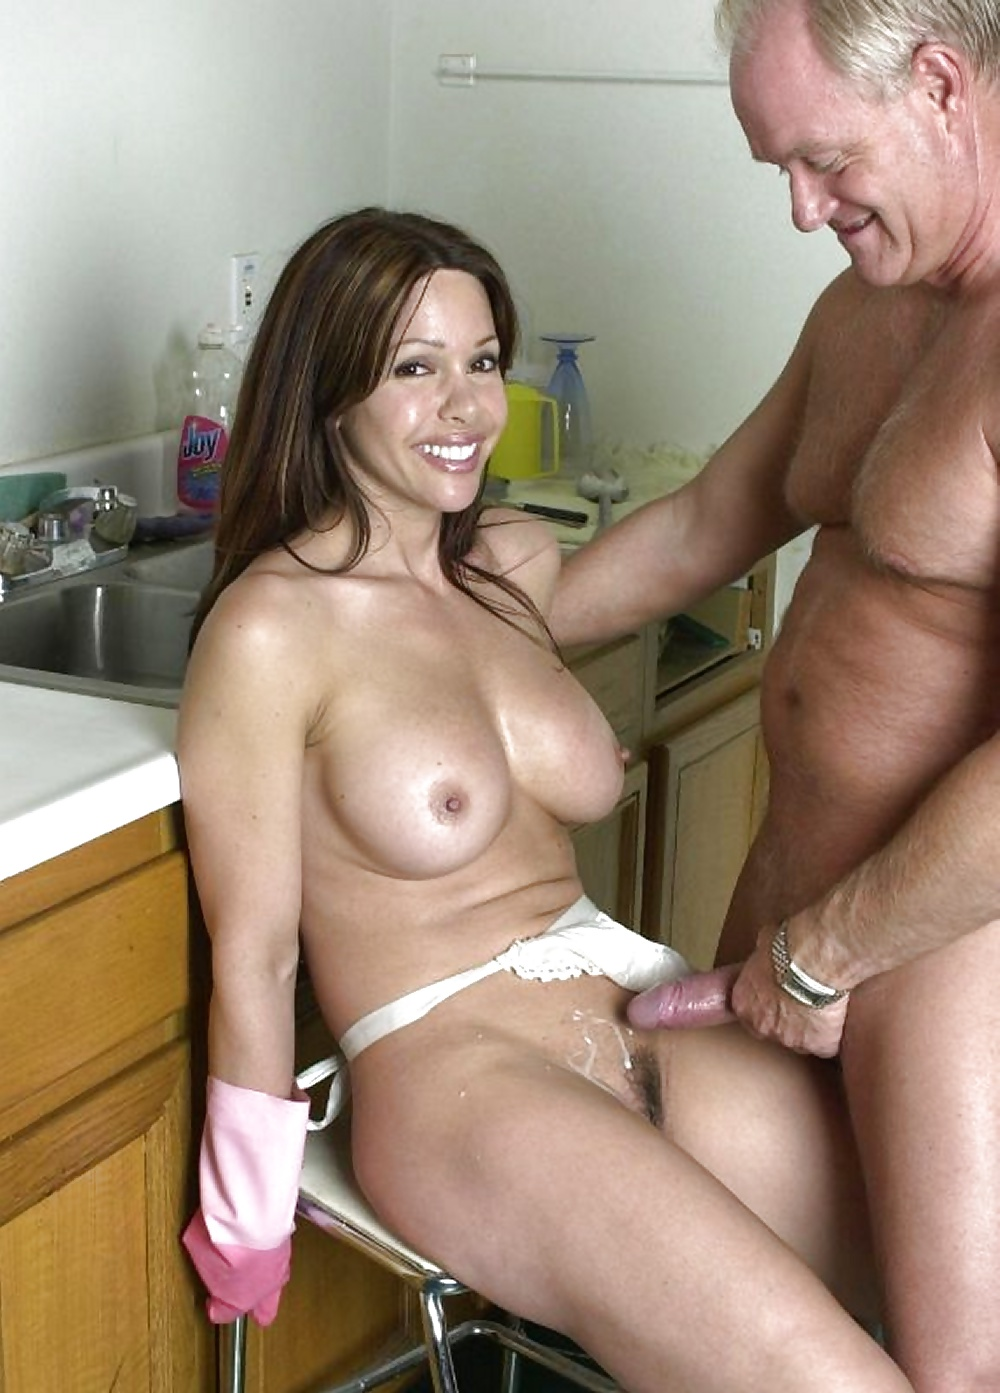 British housewife sex galery images, free british housewife fuck galery, free